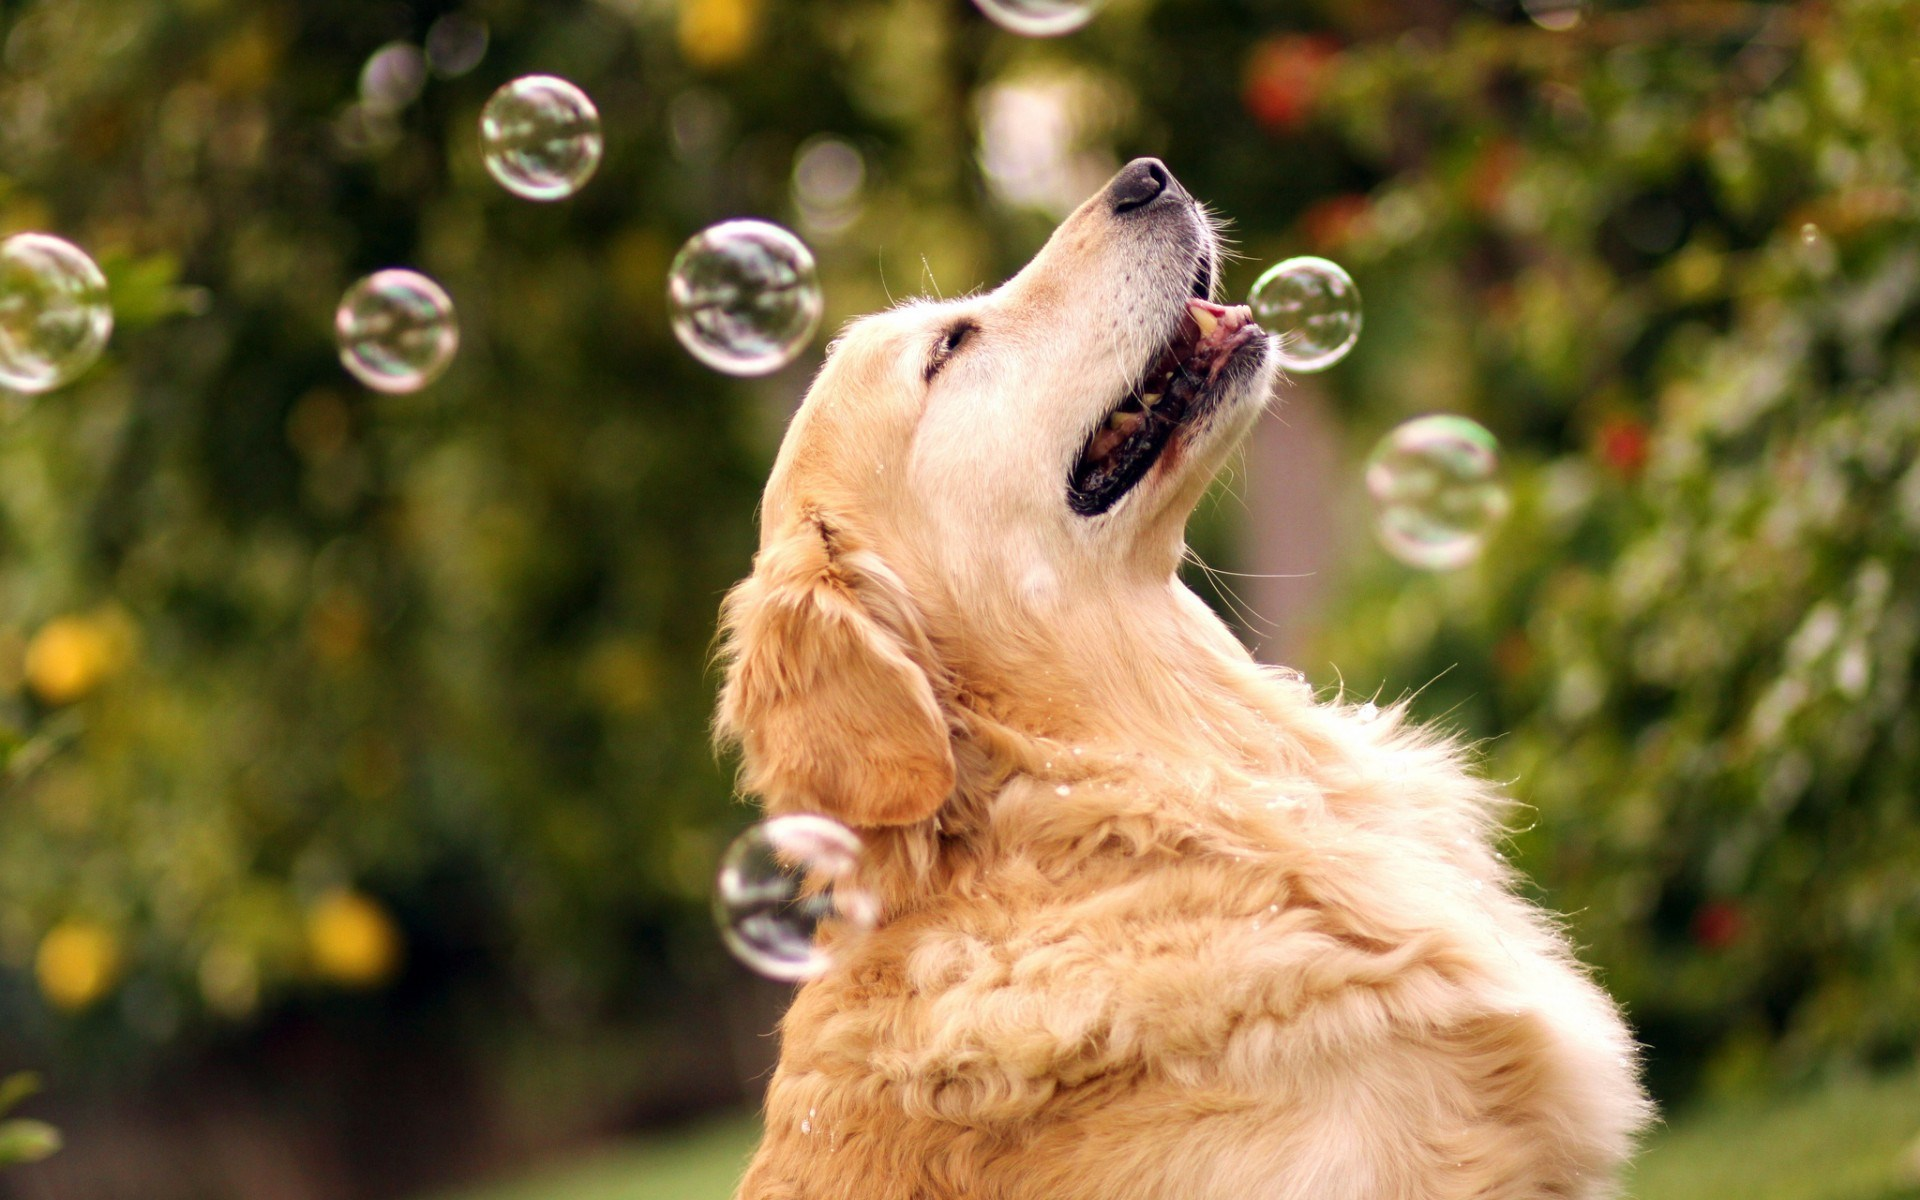 Dogs Background Wallpaper High Definition High Quality